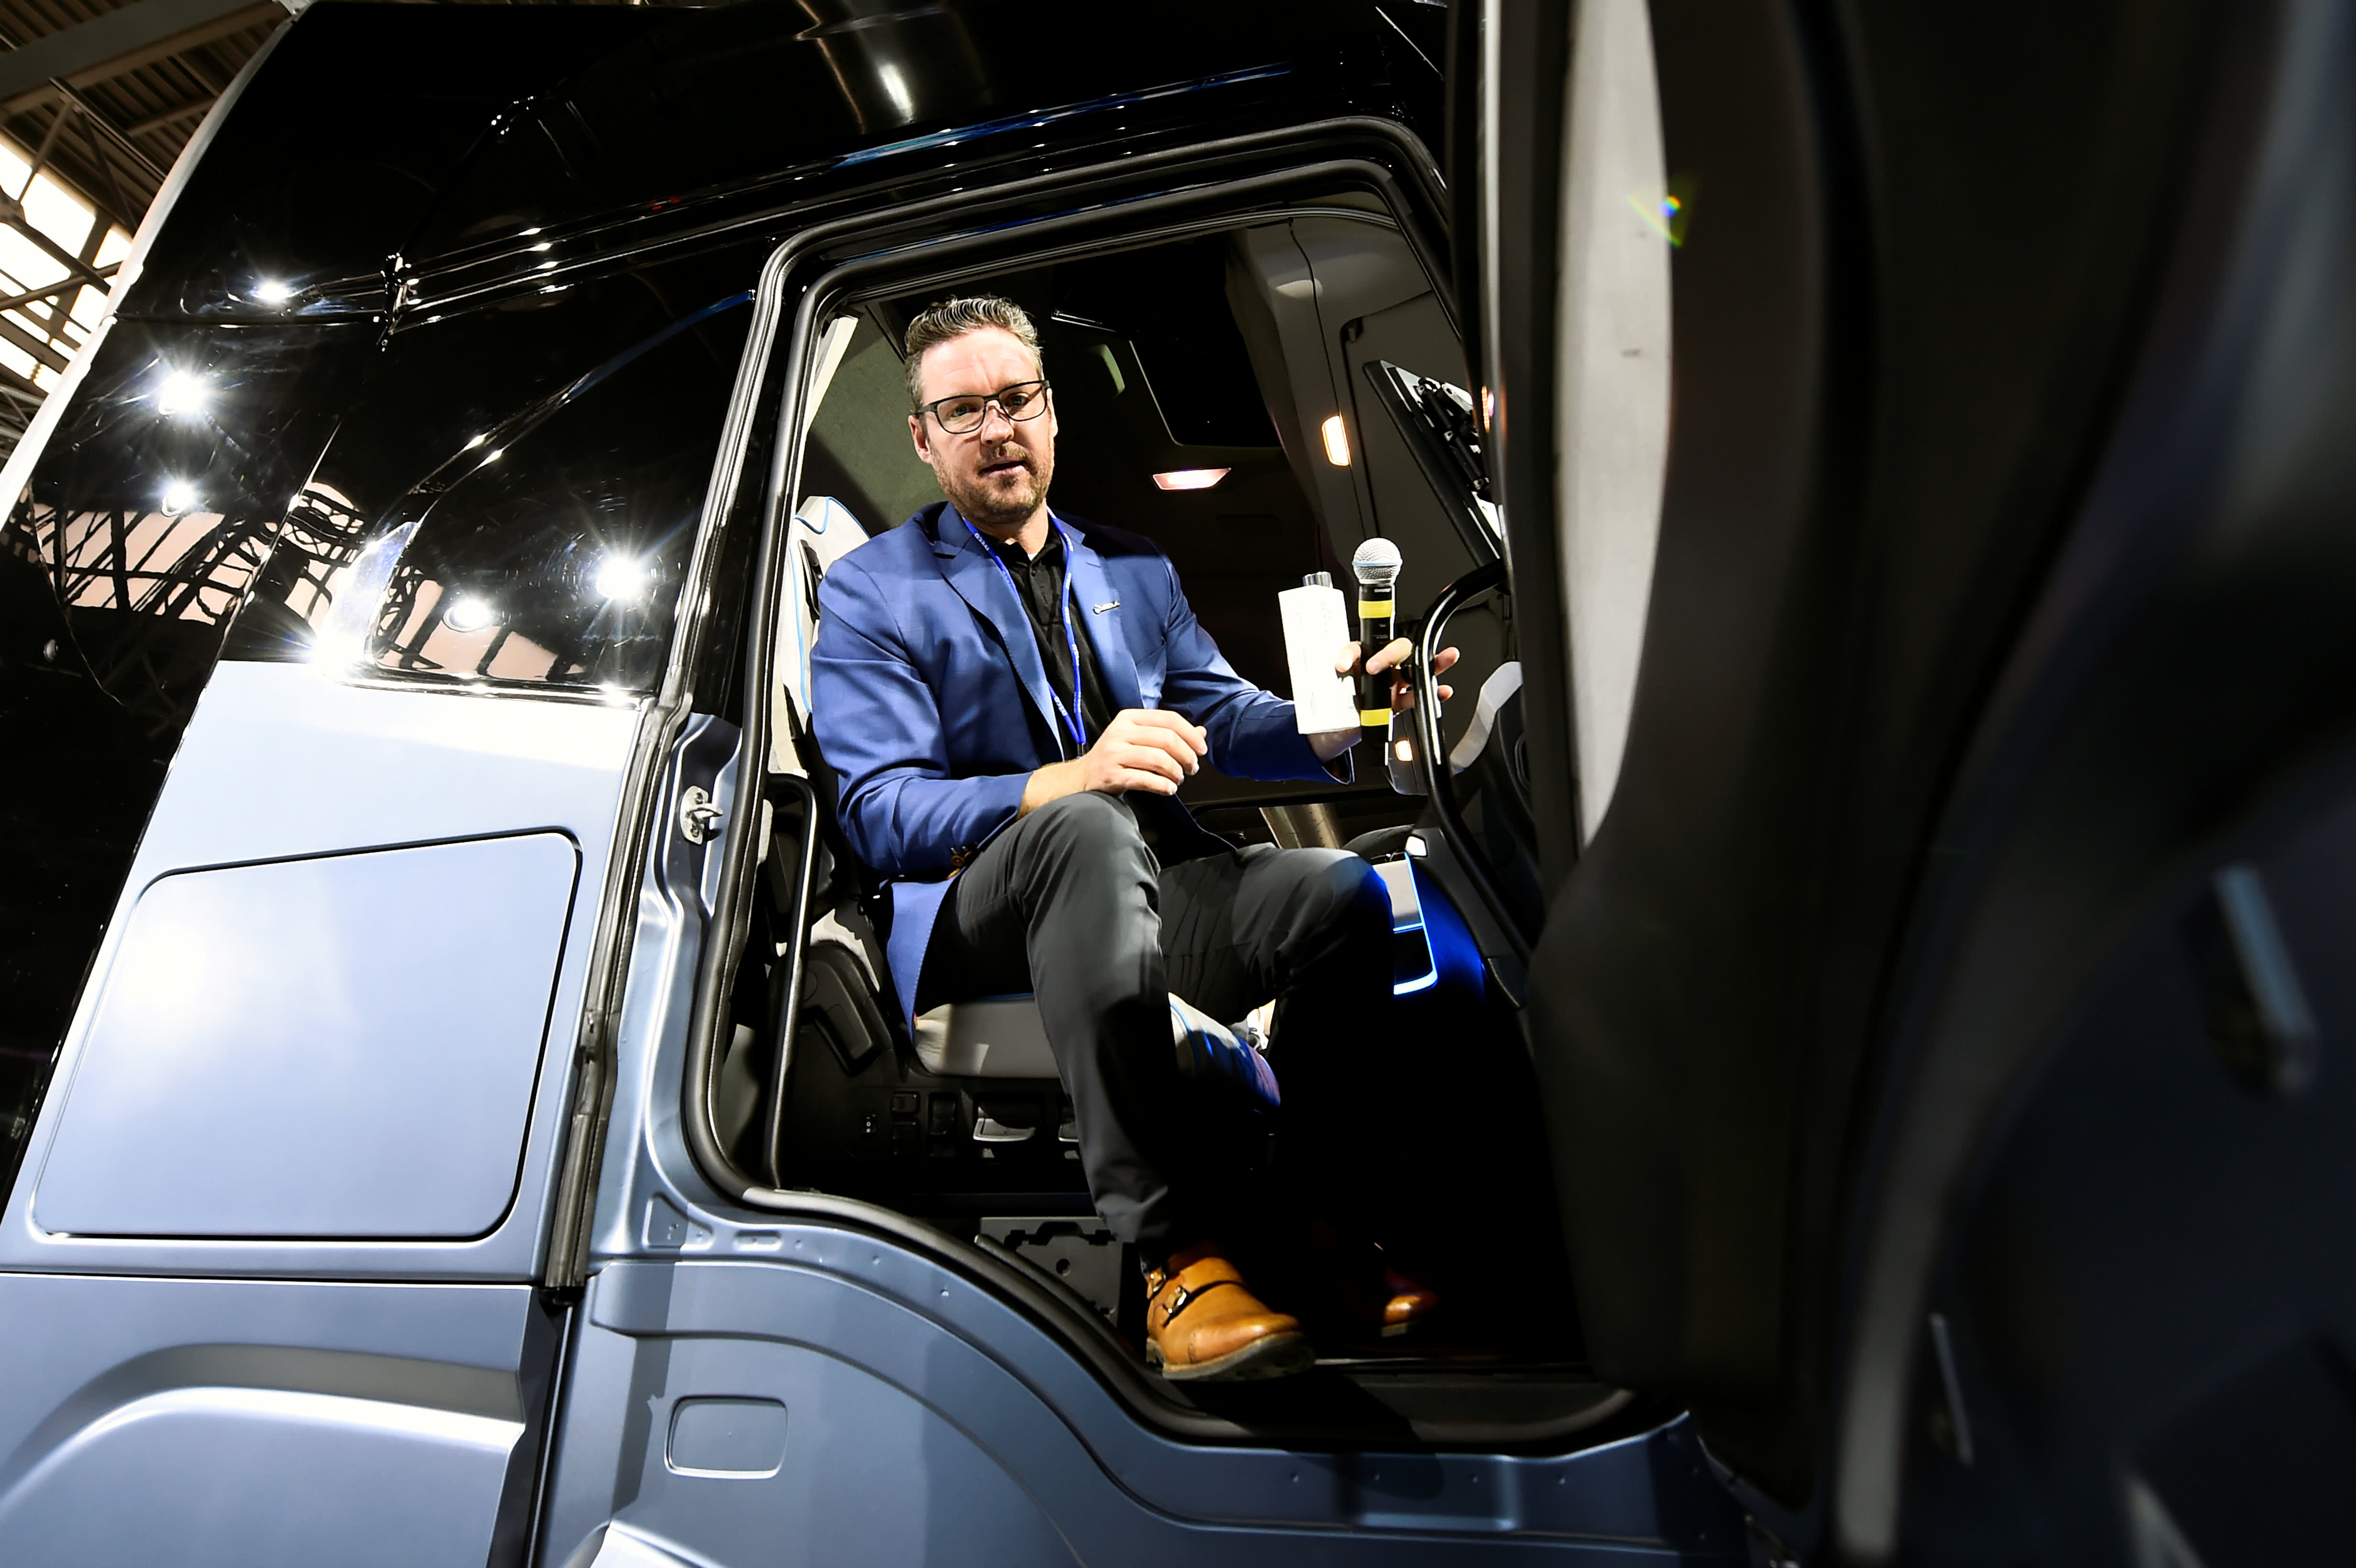 Nikola shares fall to new low on Wedbush downgrade analyst says stock too risky to own – CNBC